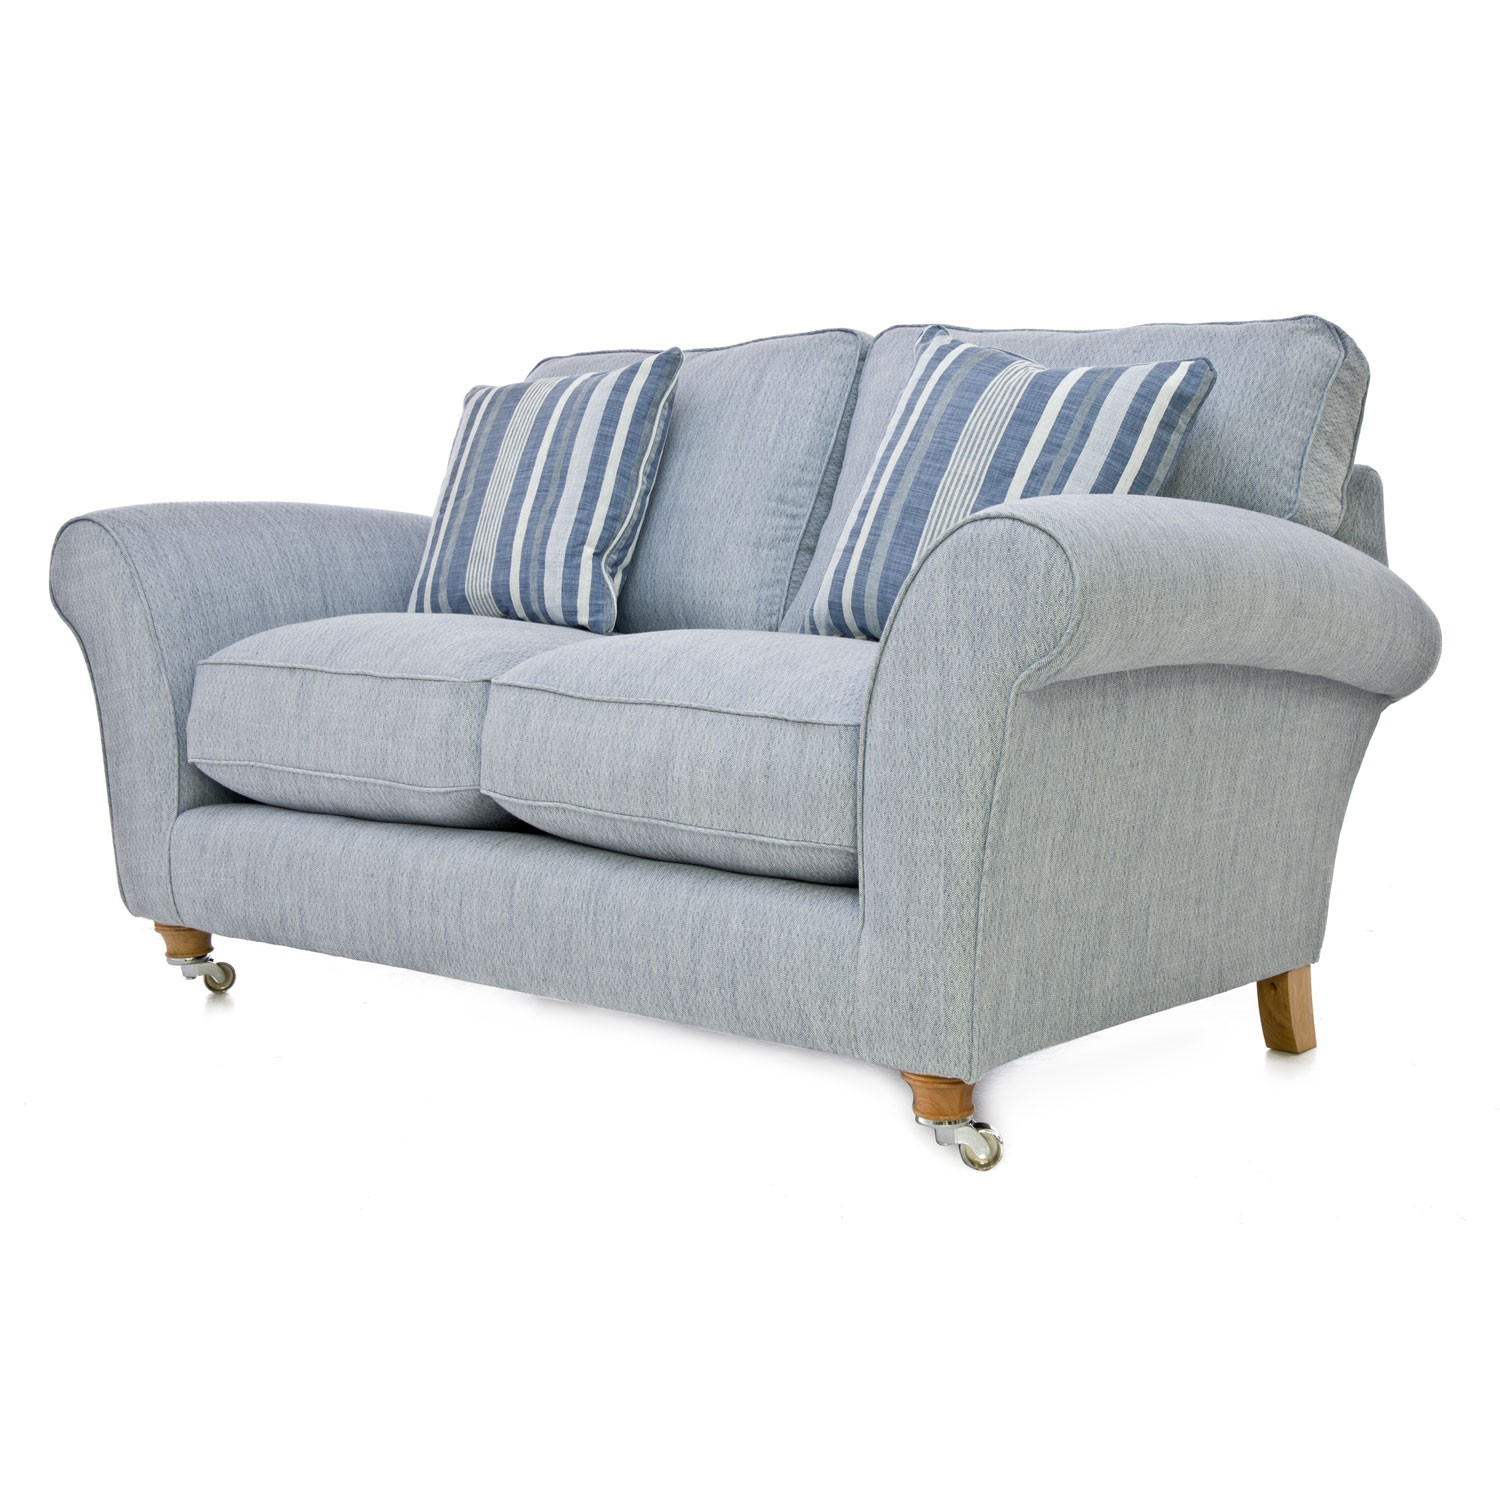 Chatsworth 2 seater sofa for 2 seater sofa